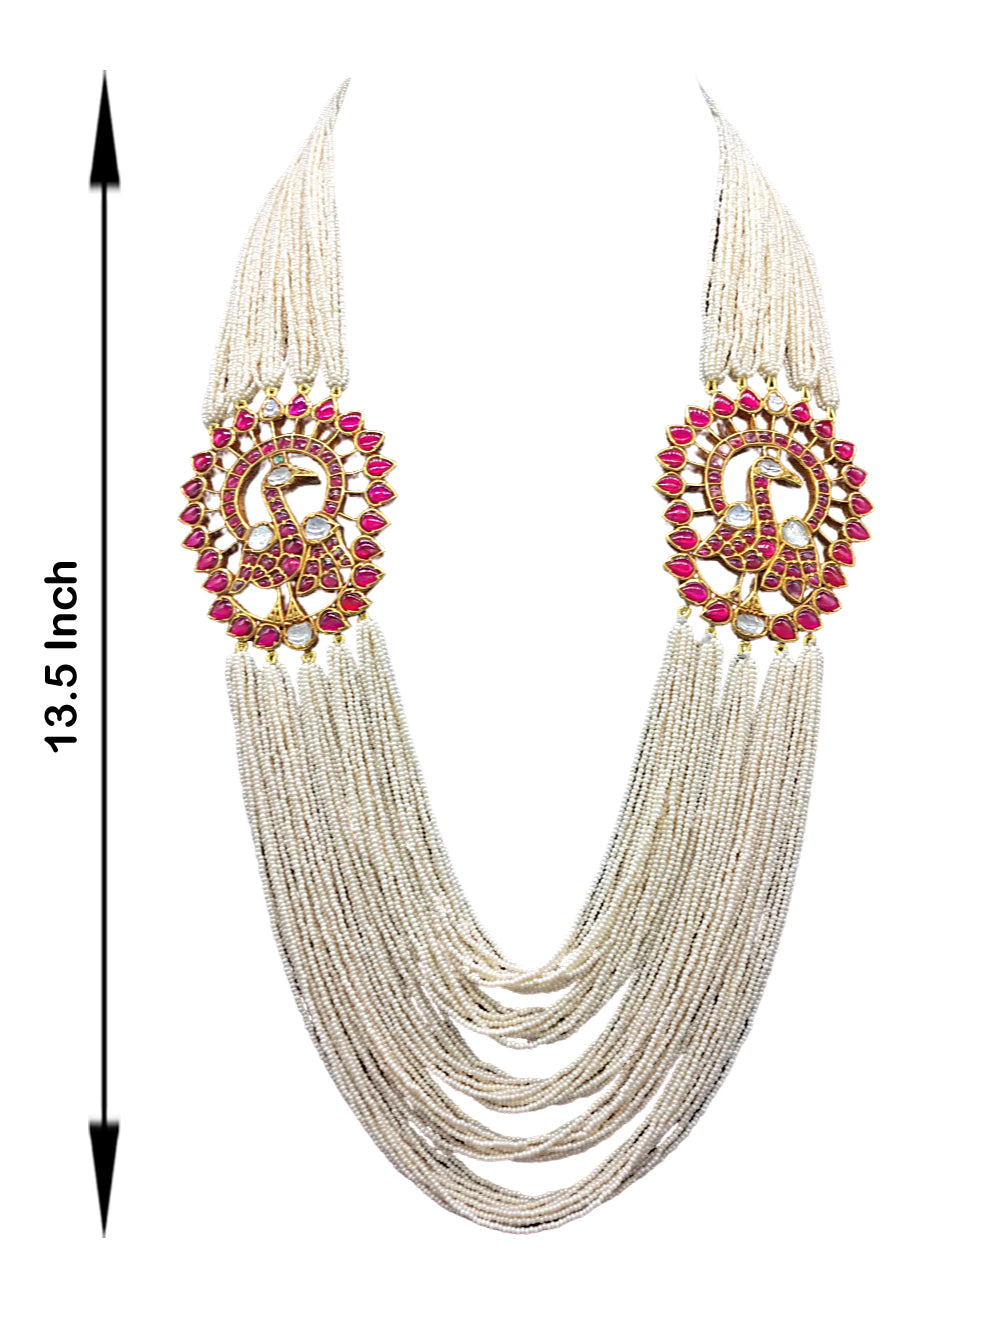 22k Gold and Diamond Polki Peacock Broach Necklace with Rubies and Chid Pearls